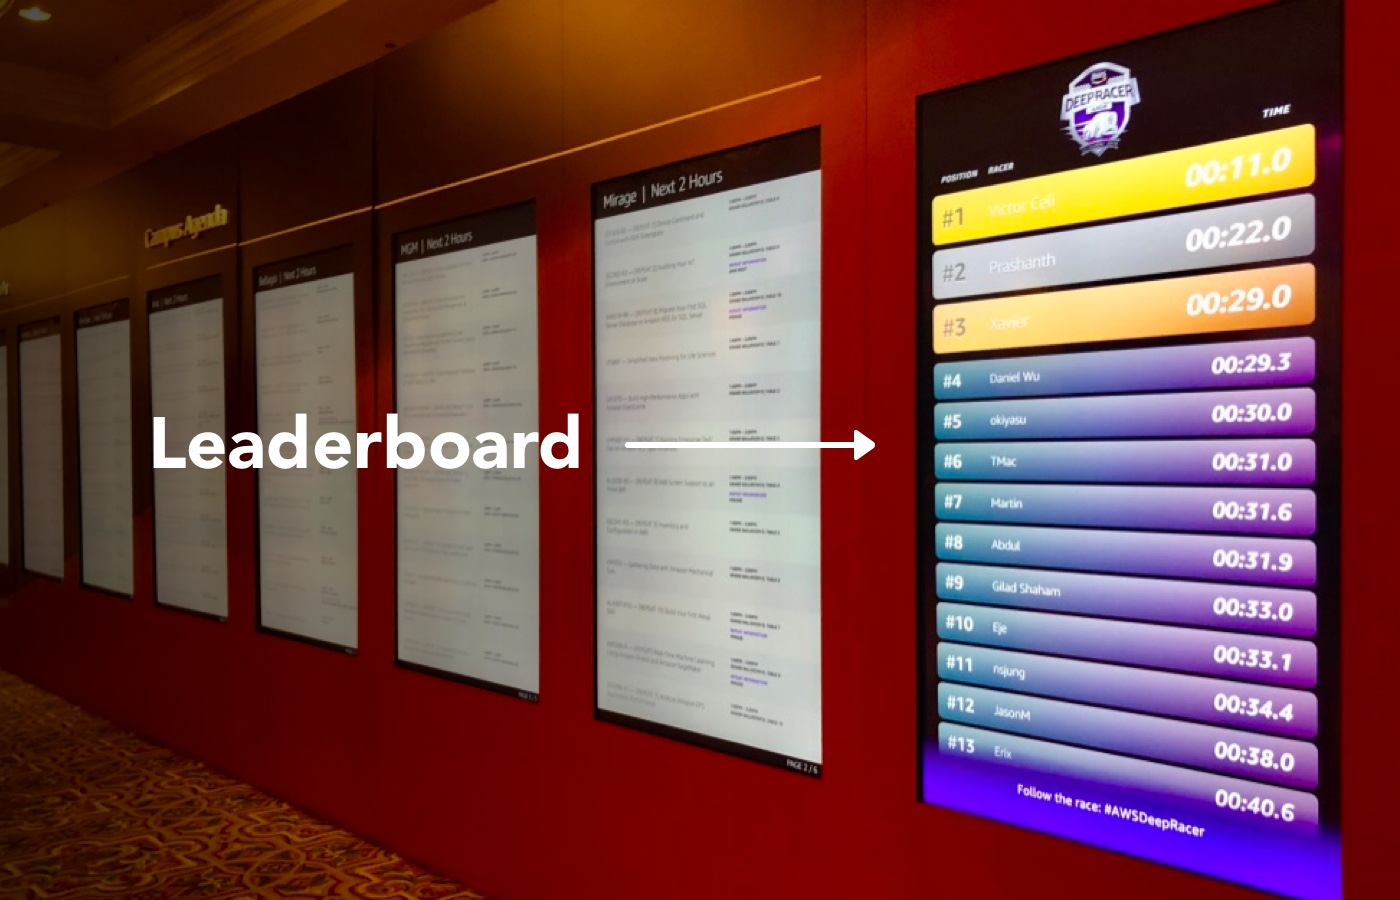 the DeepRacer leaderboard on the wall at AWS re:Invent